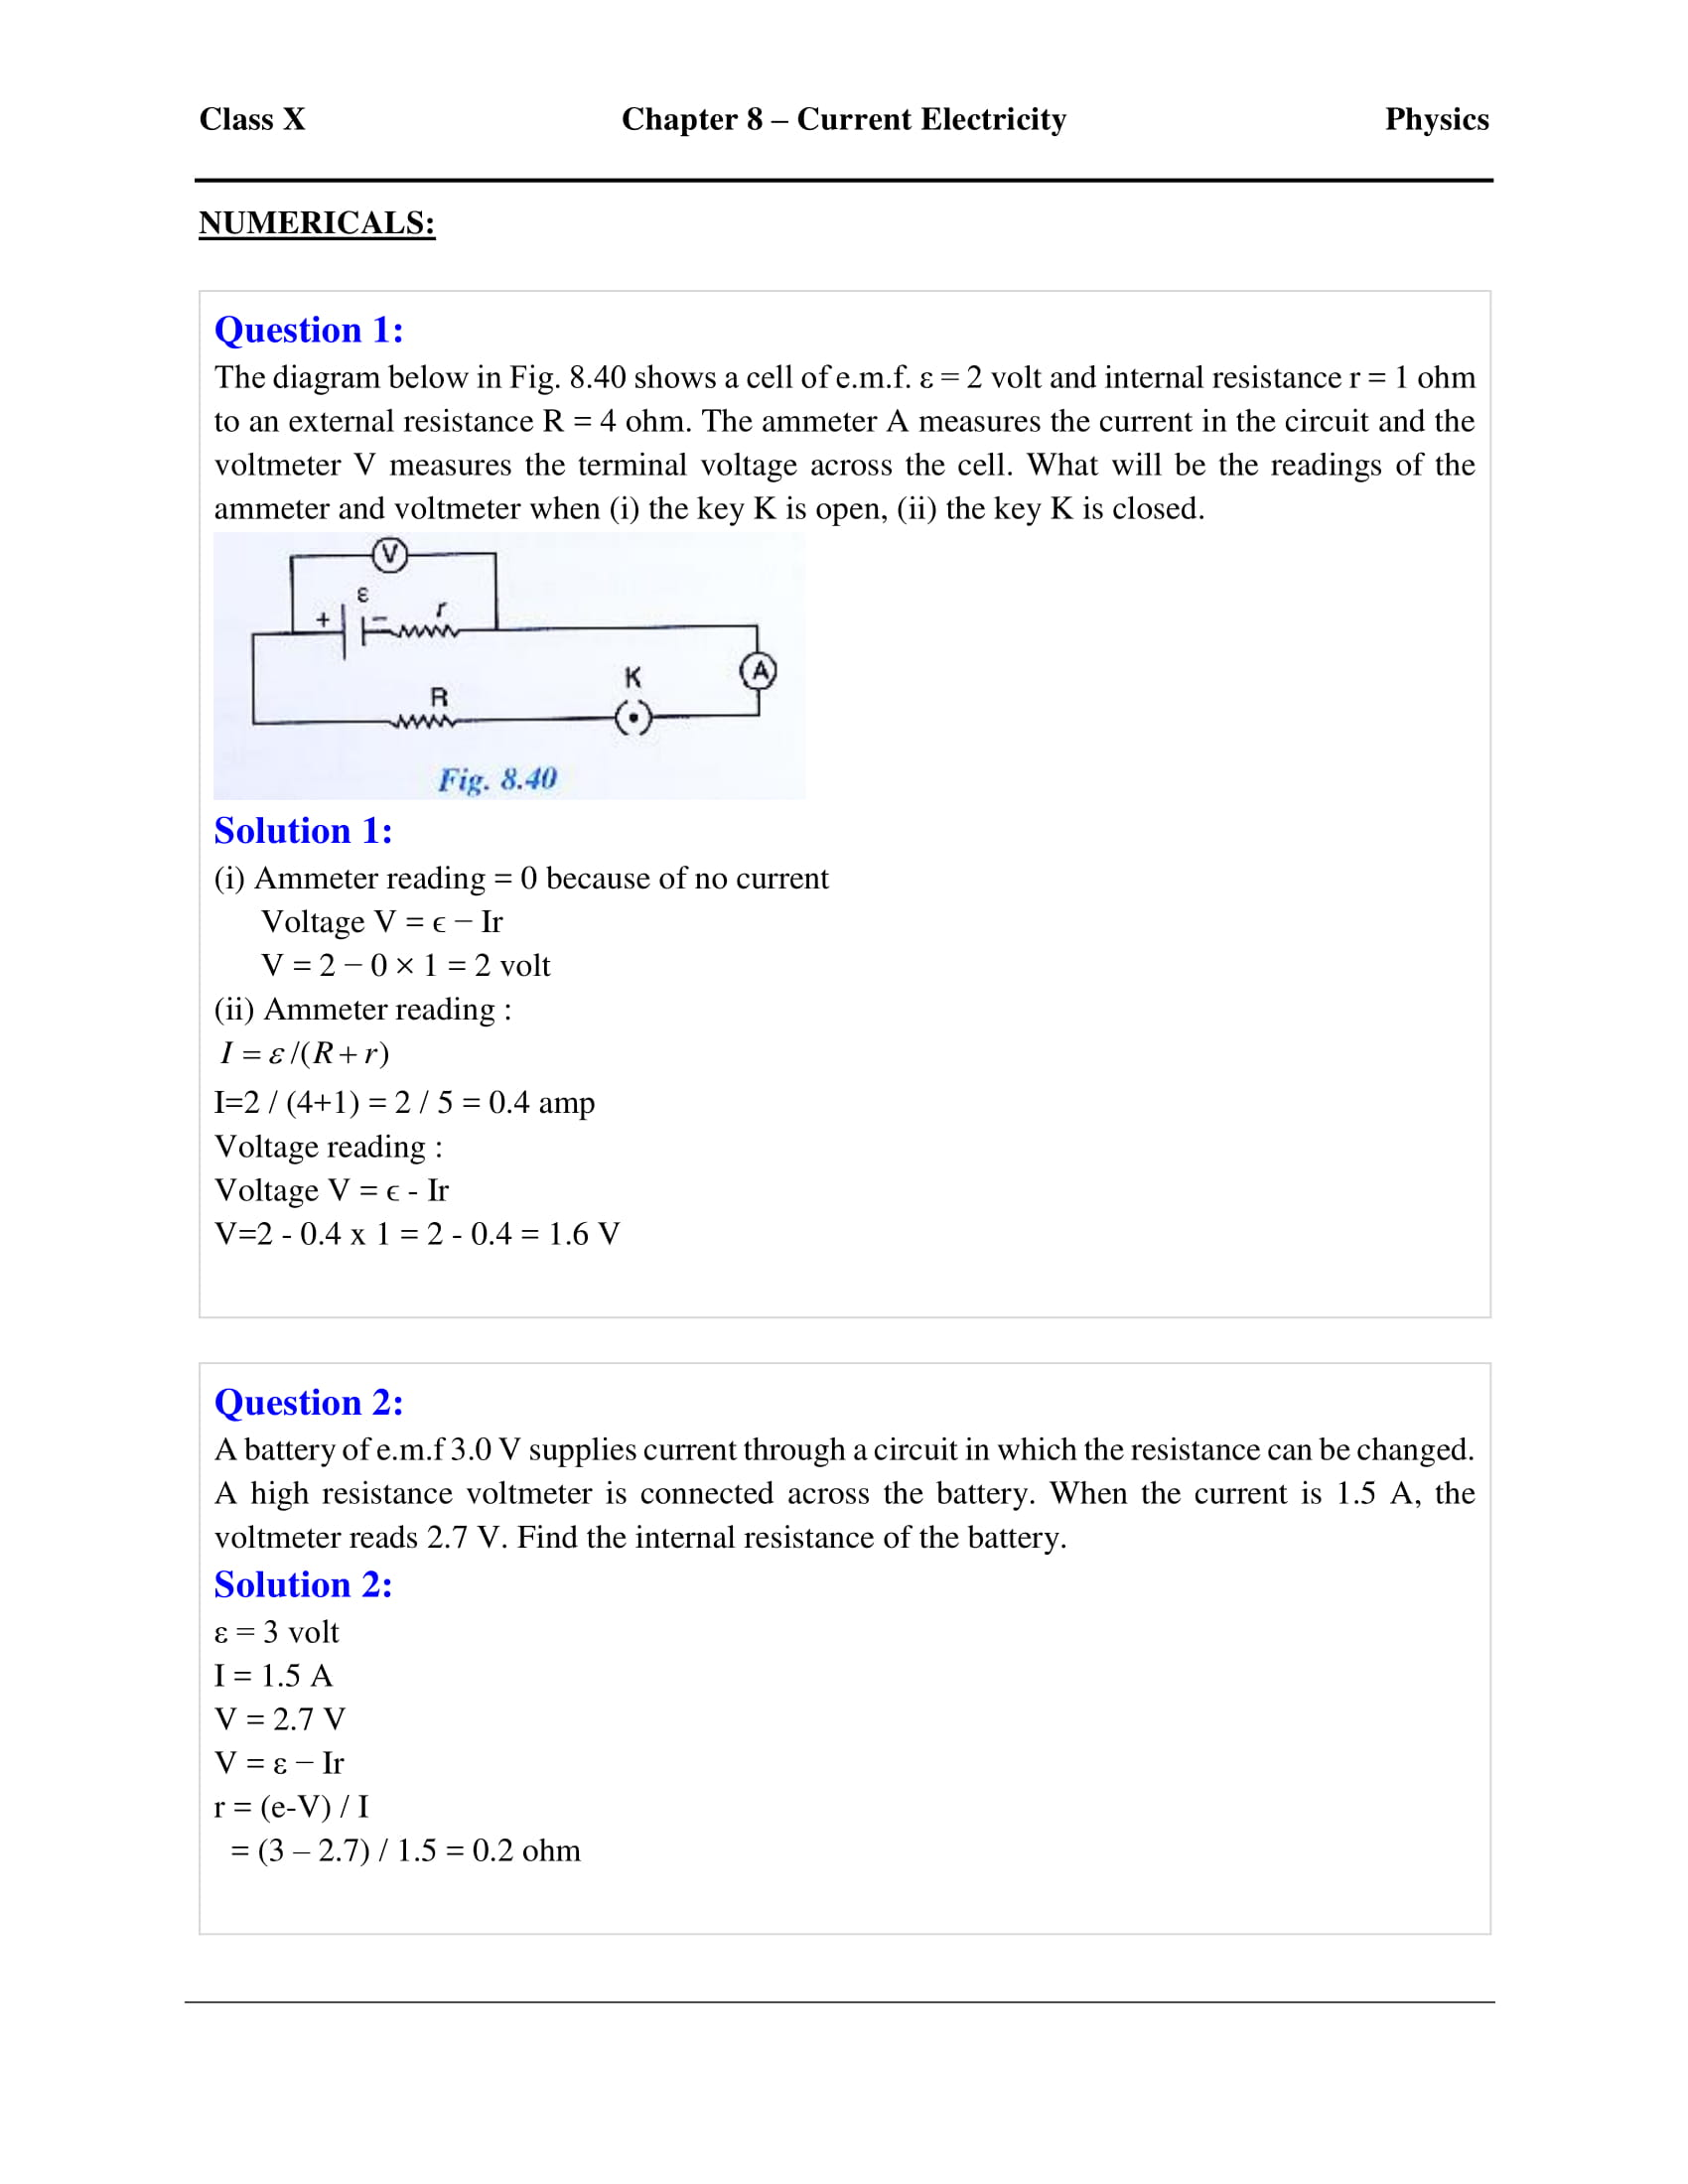 icse-selina-physics-solutions-class-10-chapter-8-current-electricity-23